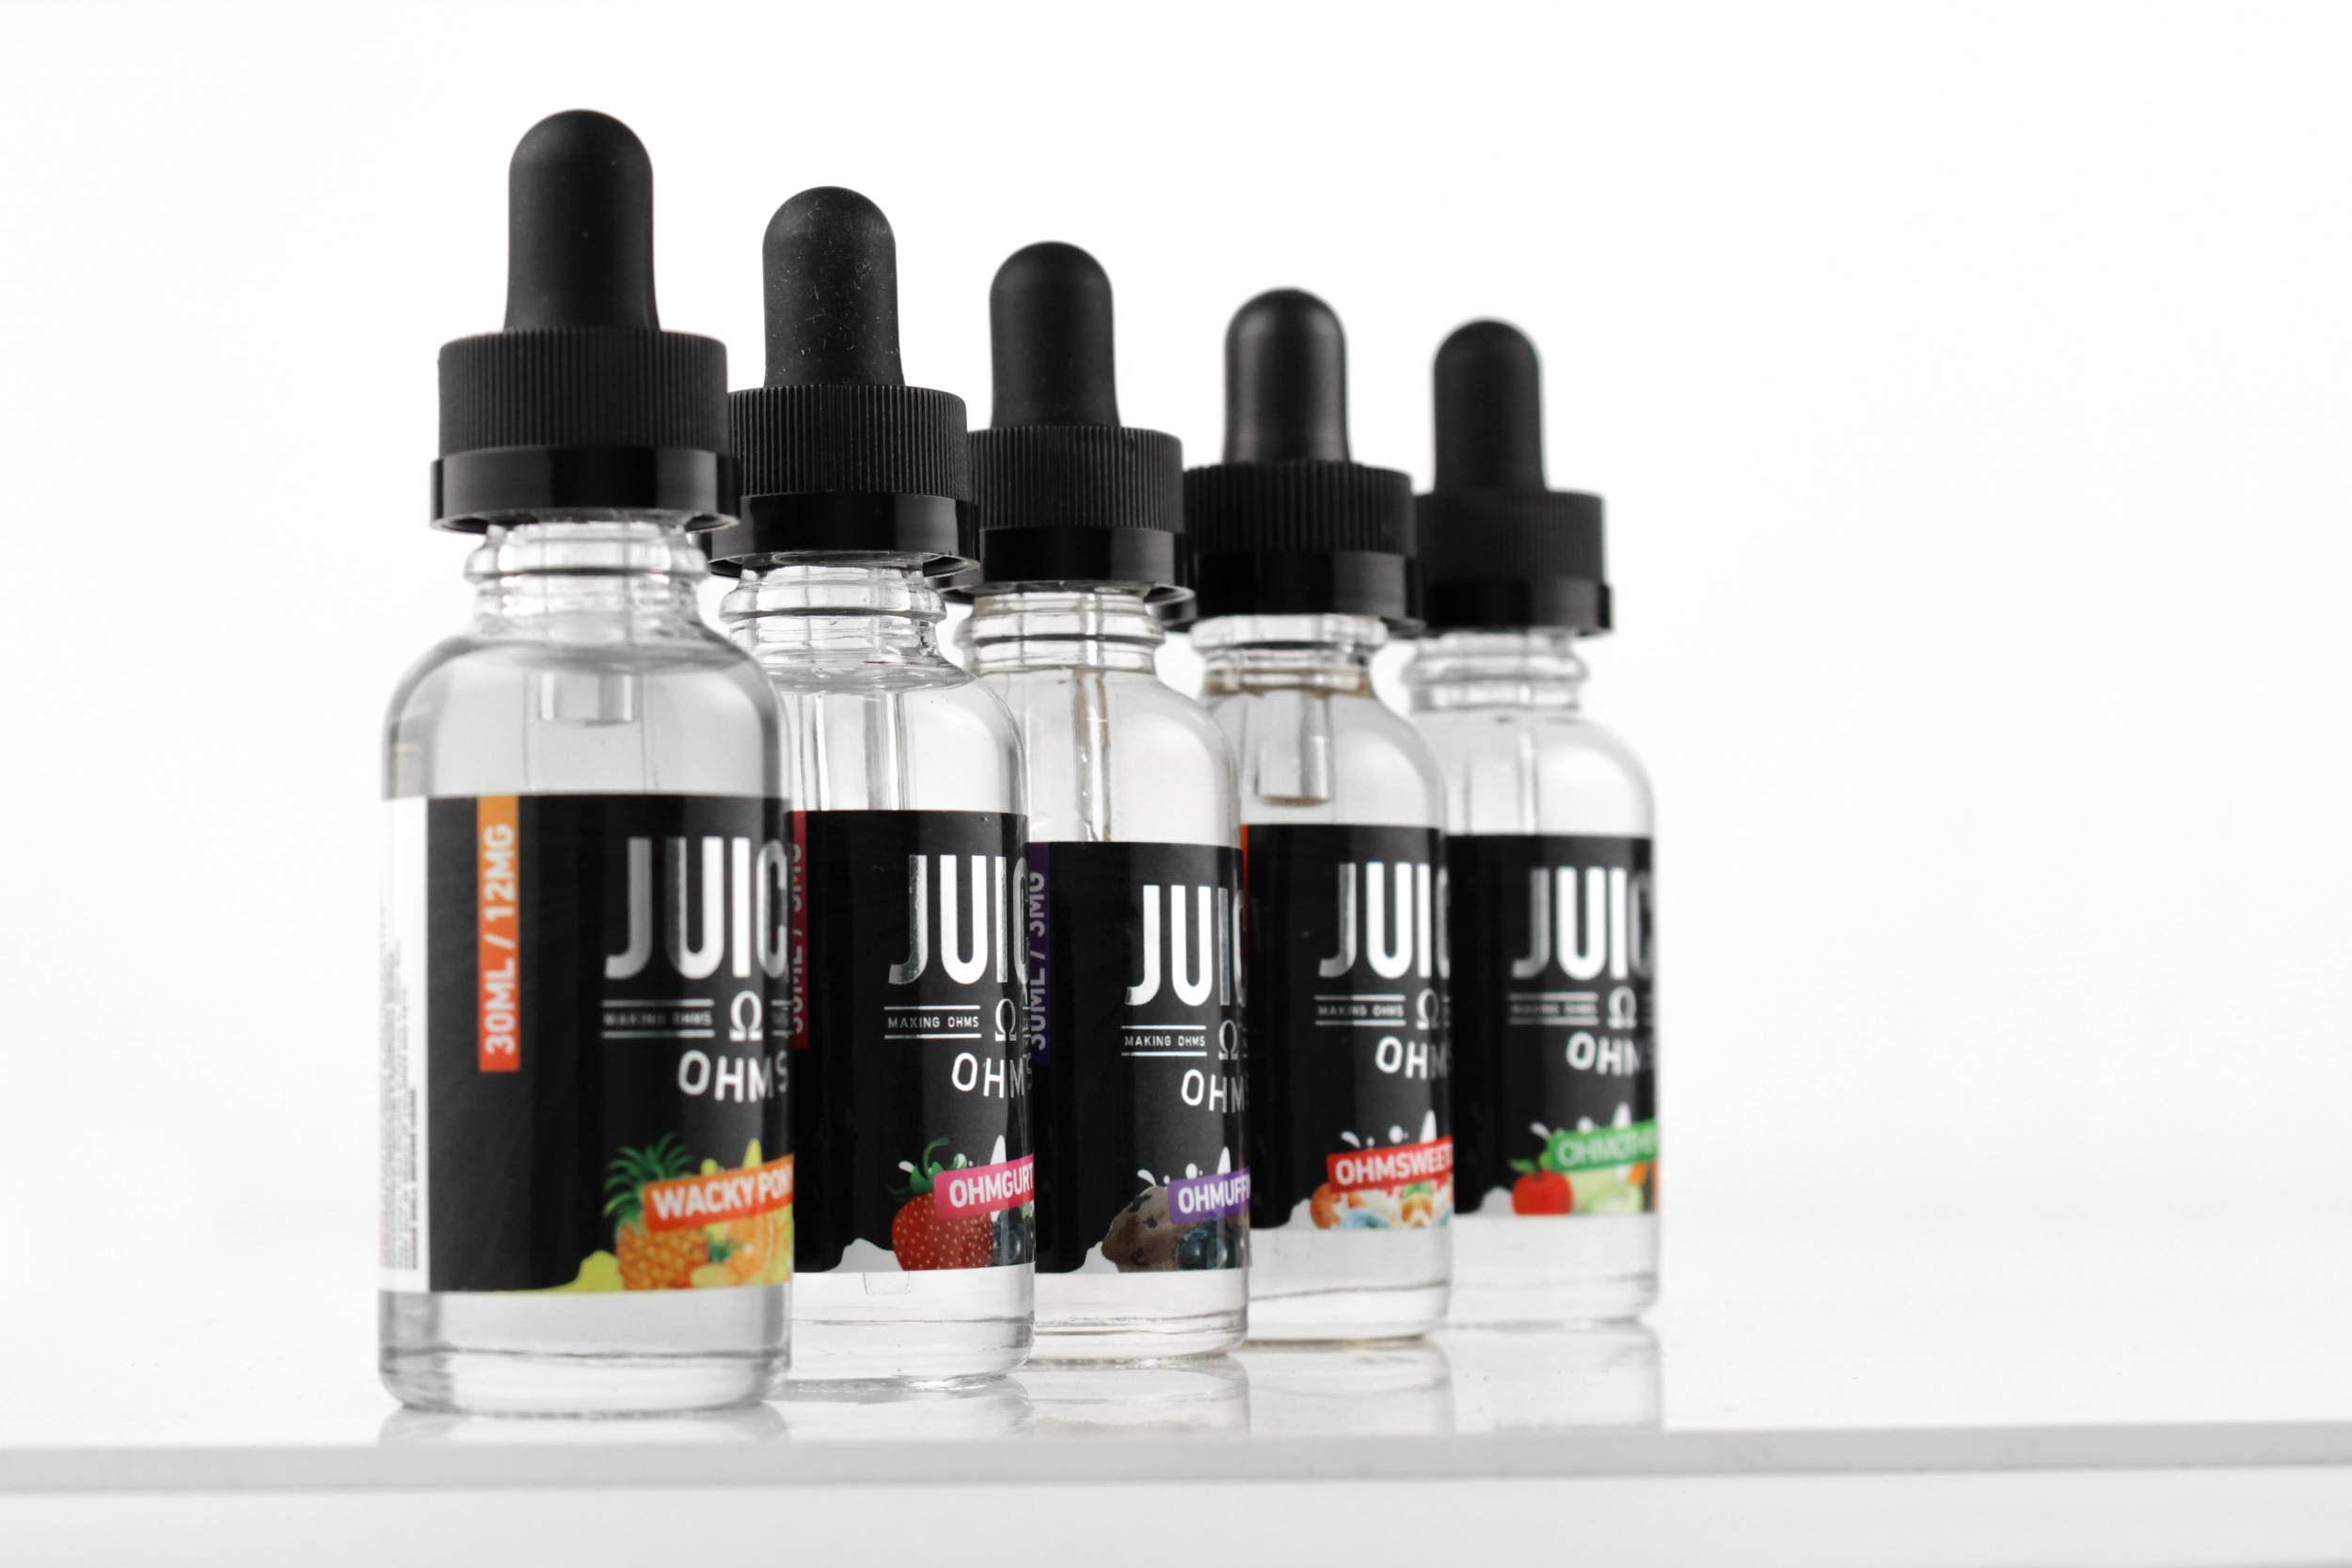 juicyohms_new_bottles_30ml.jpg